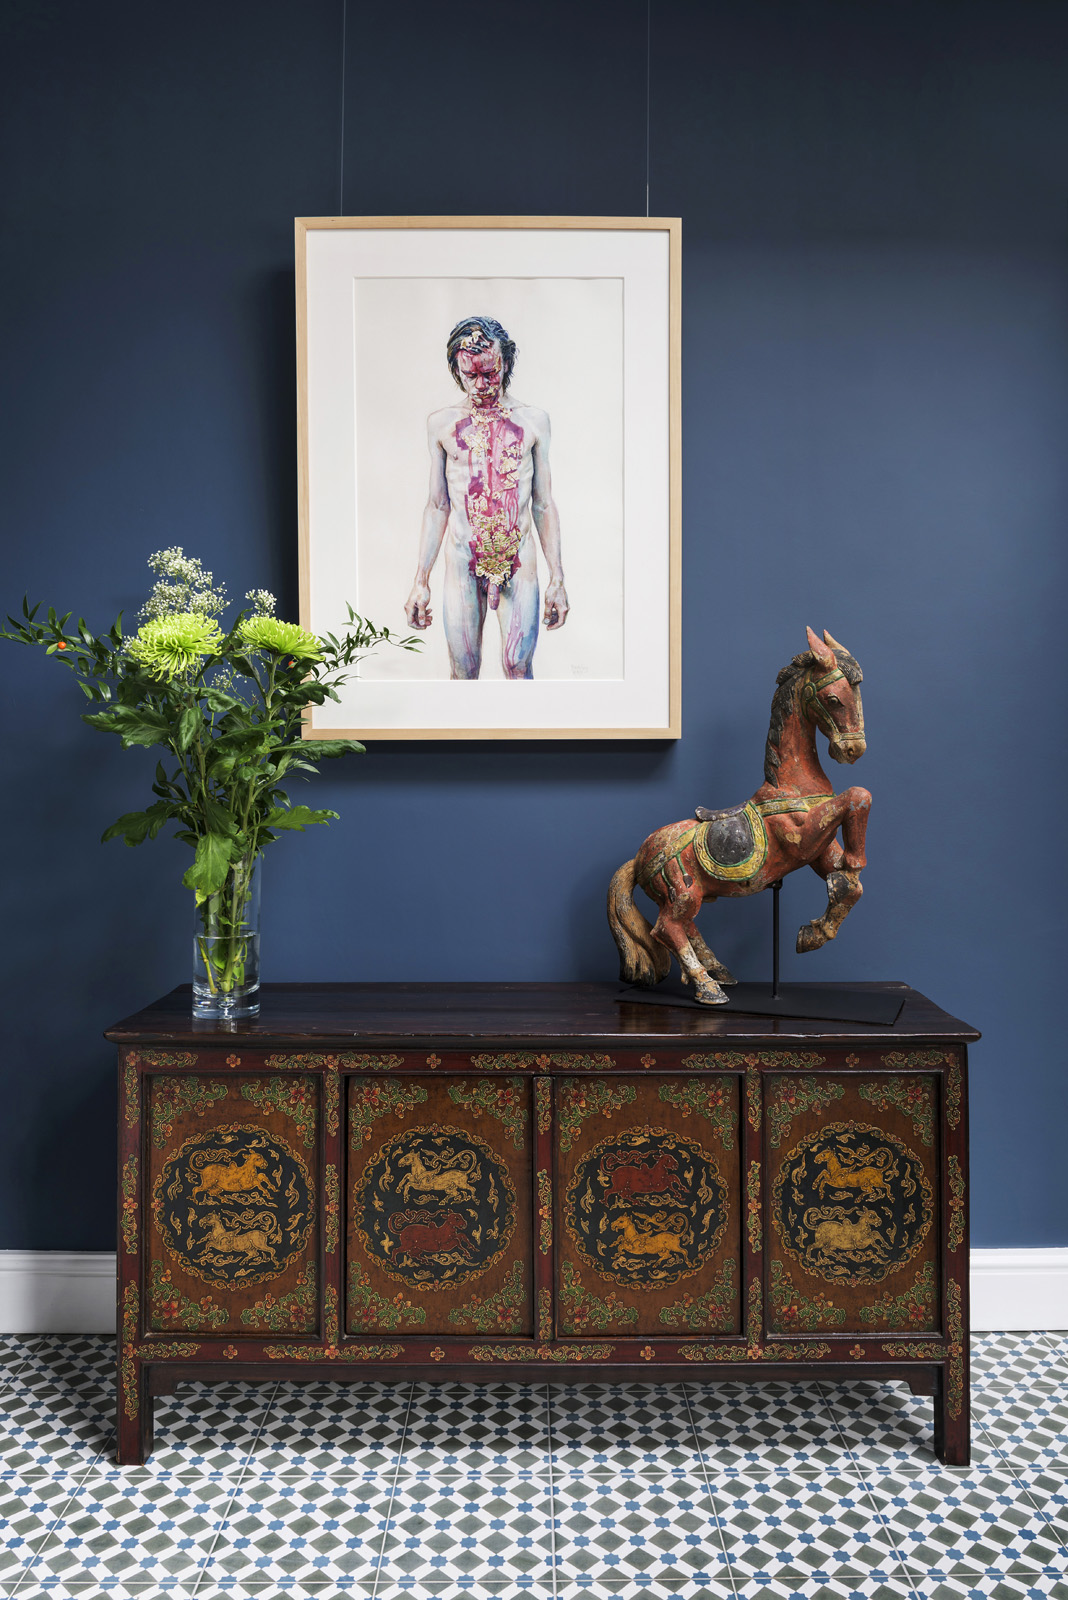 A painting by Daniel Barkley, displayed over a Tibetan Chest and an antique Burmese horse.